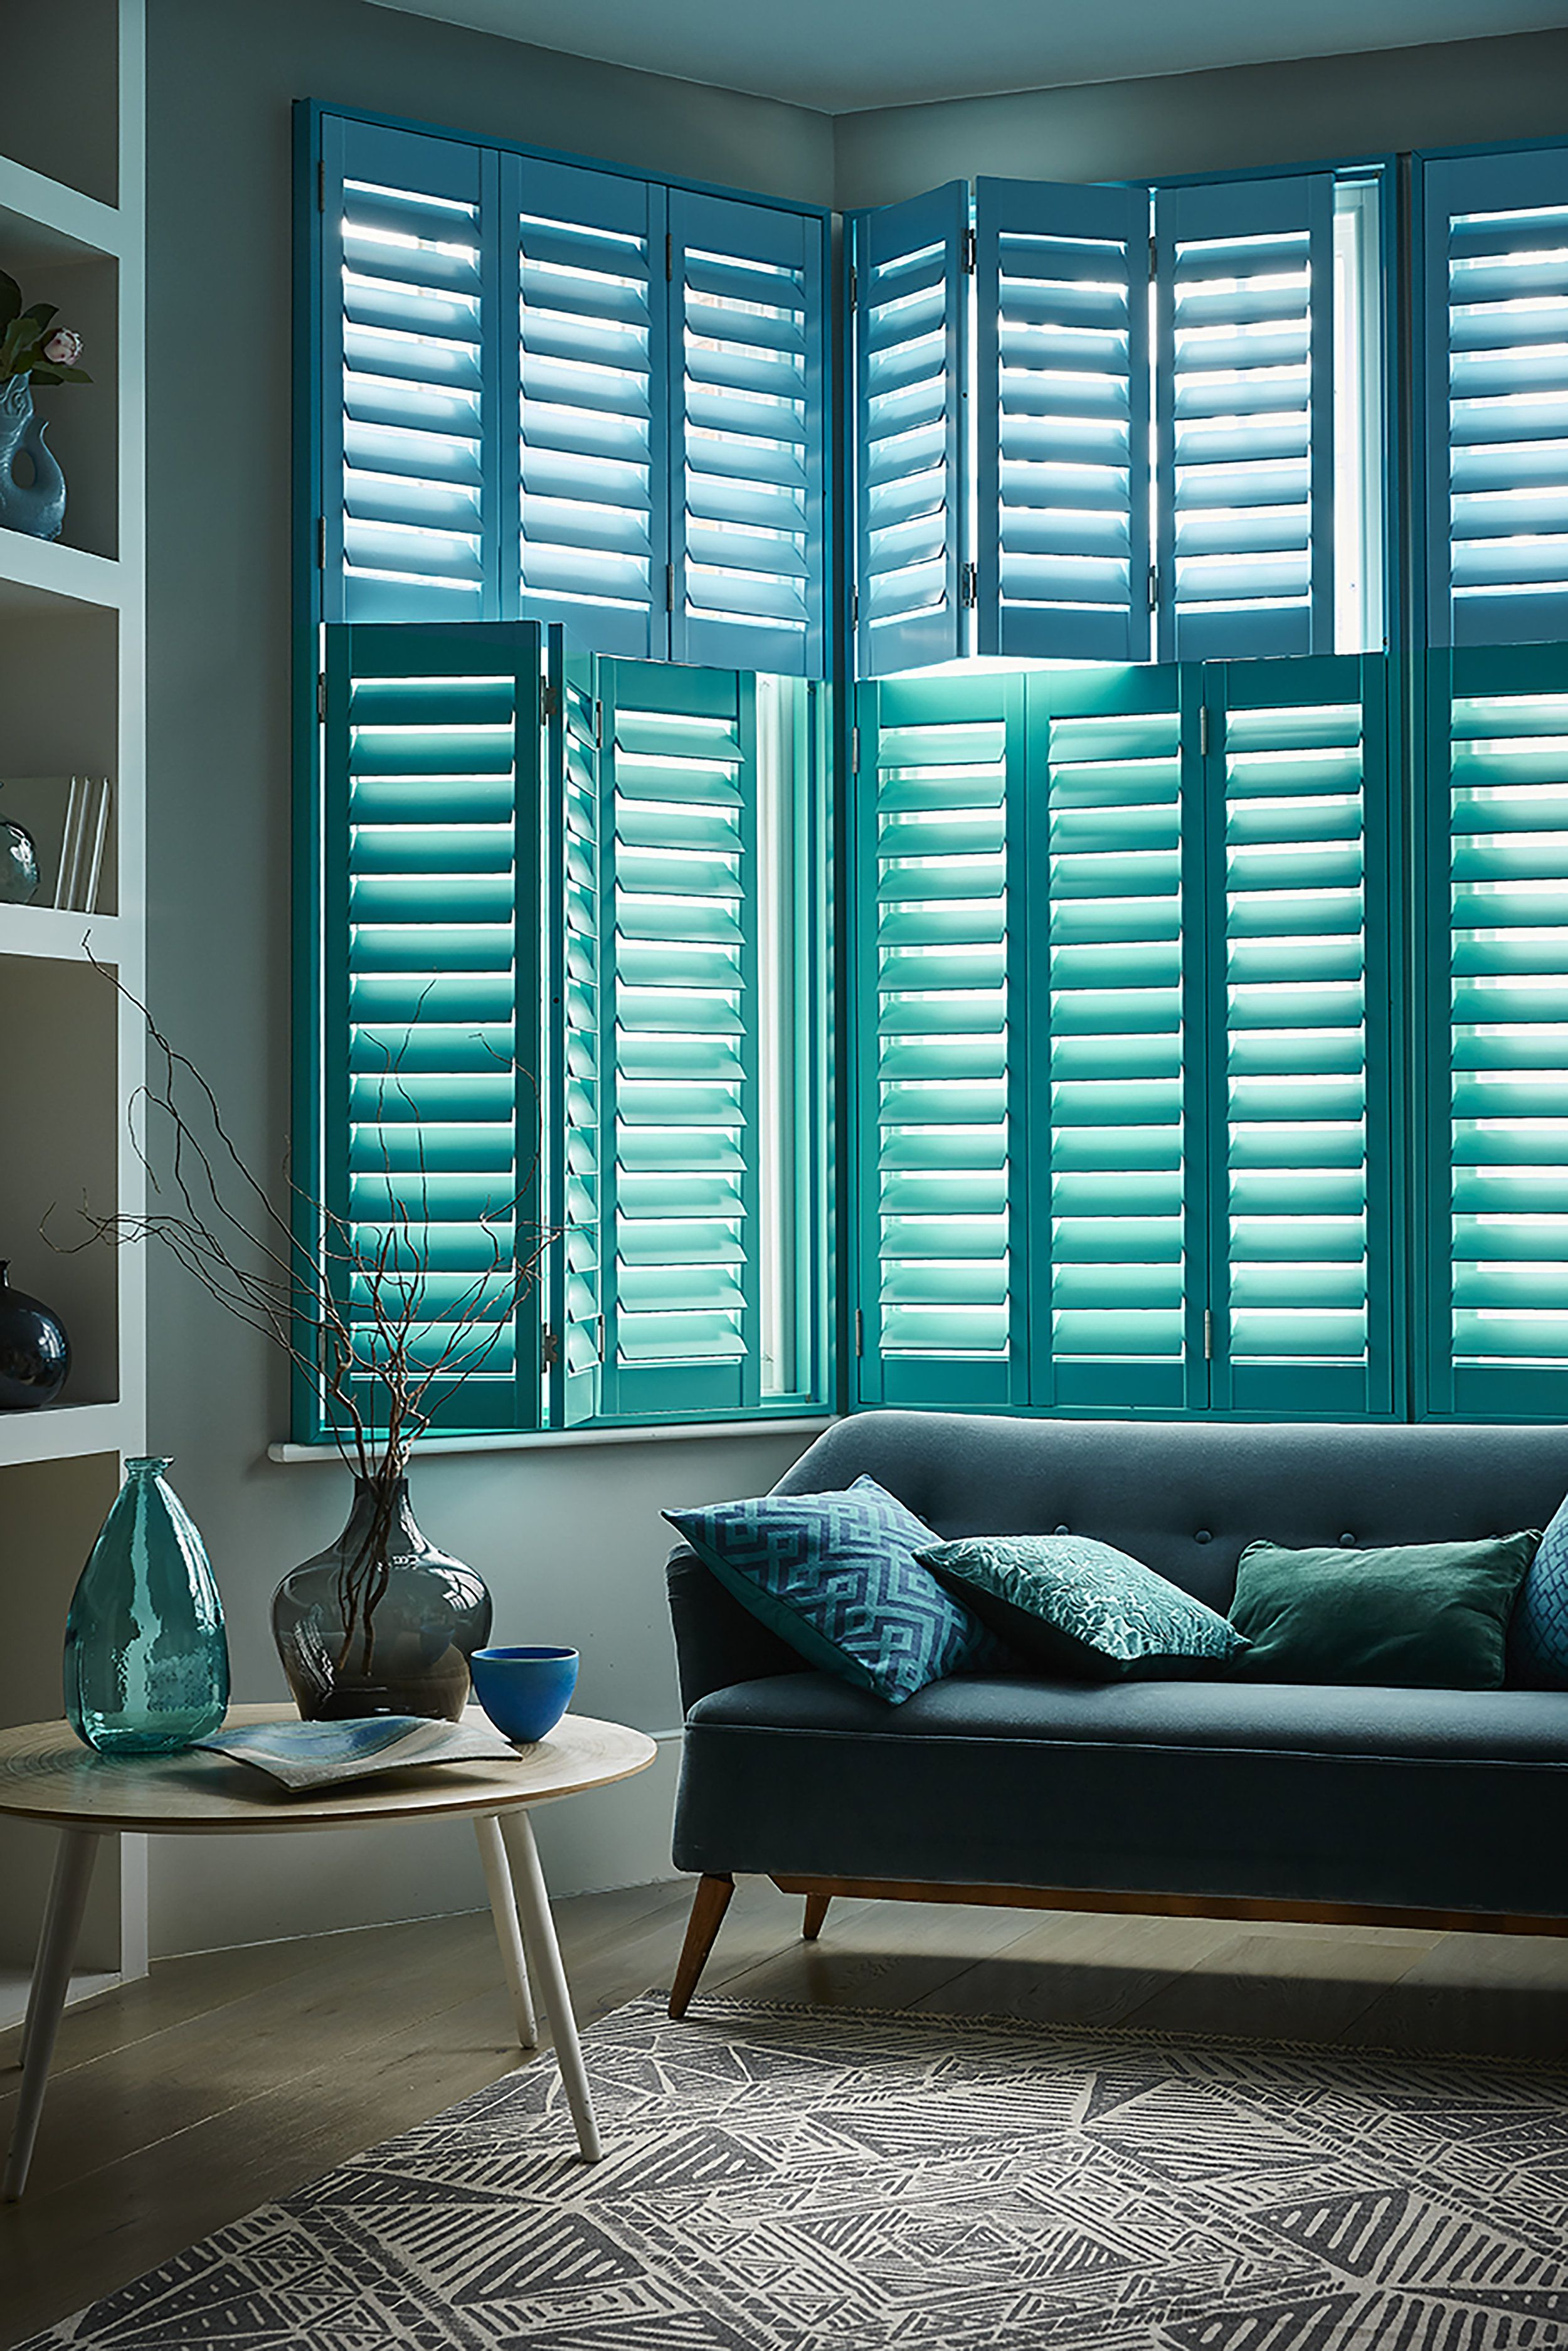 What Shutter Style Is Best For Your Windows? Cafe style